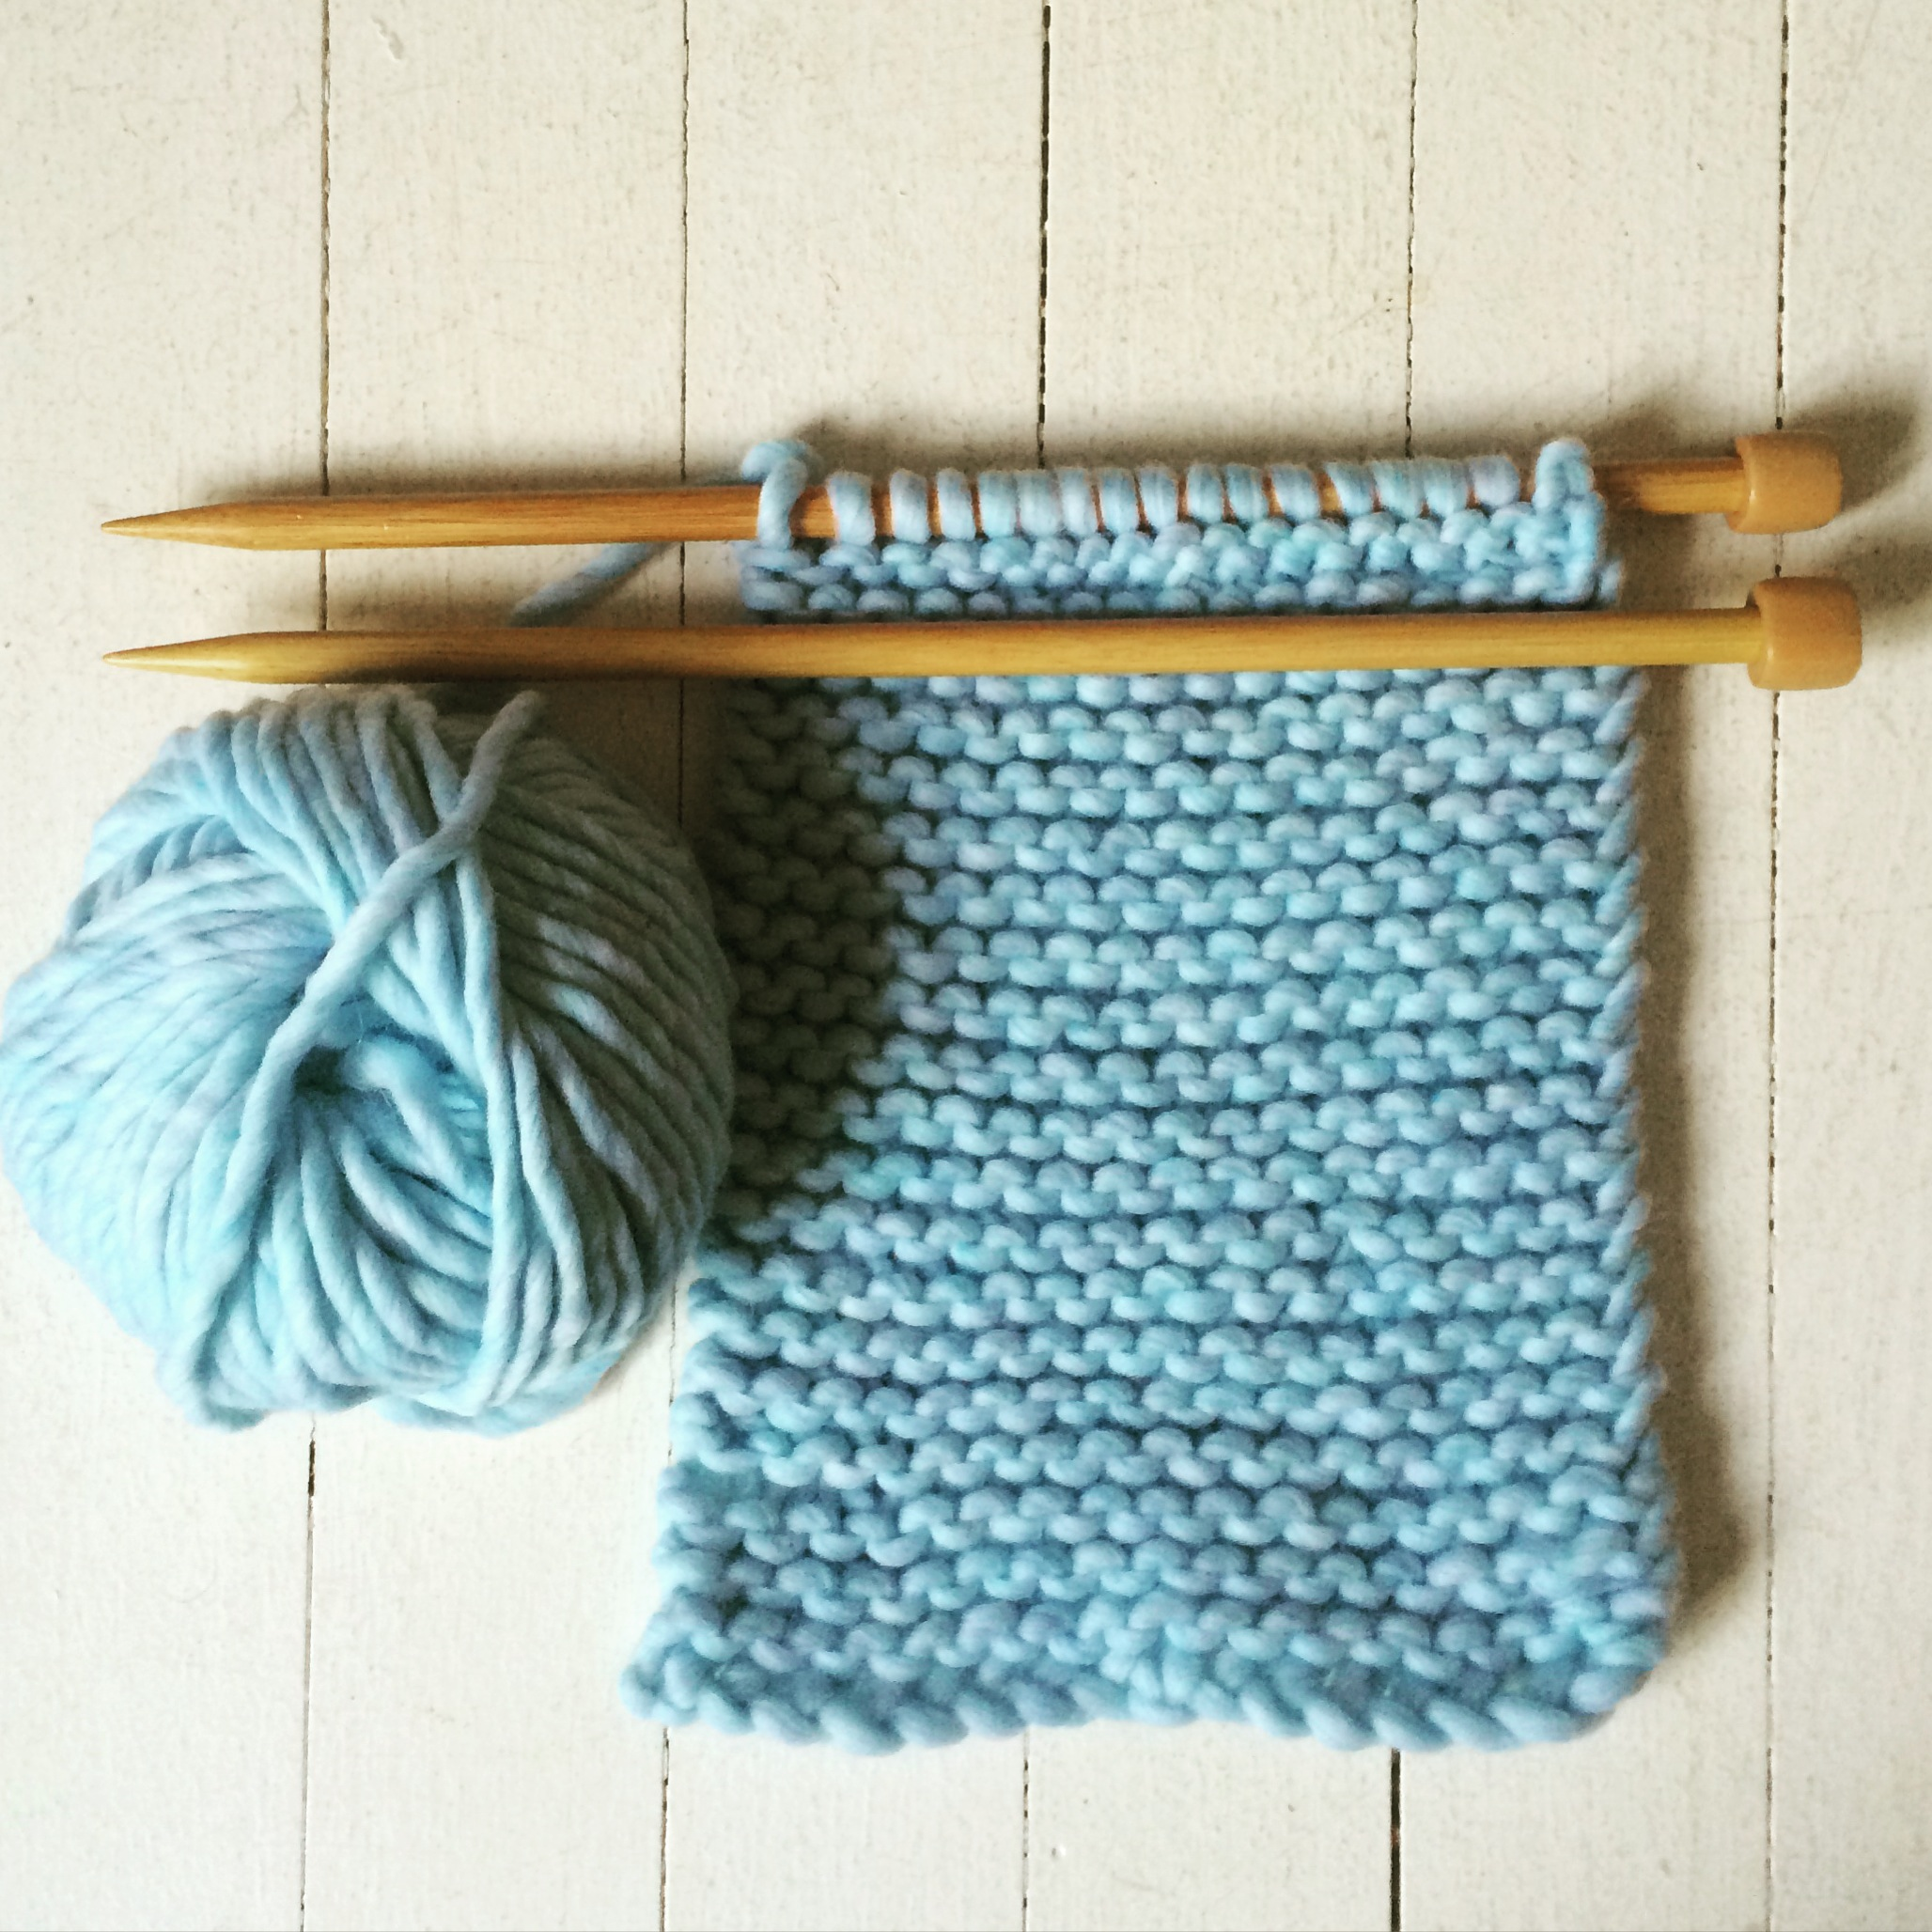 Learn To Knit at The Makery